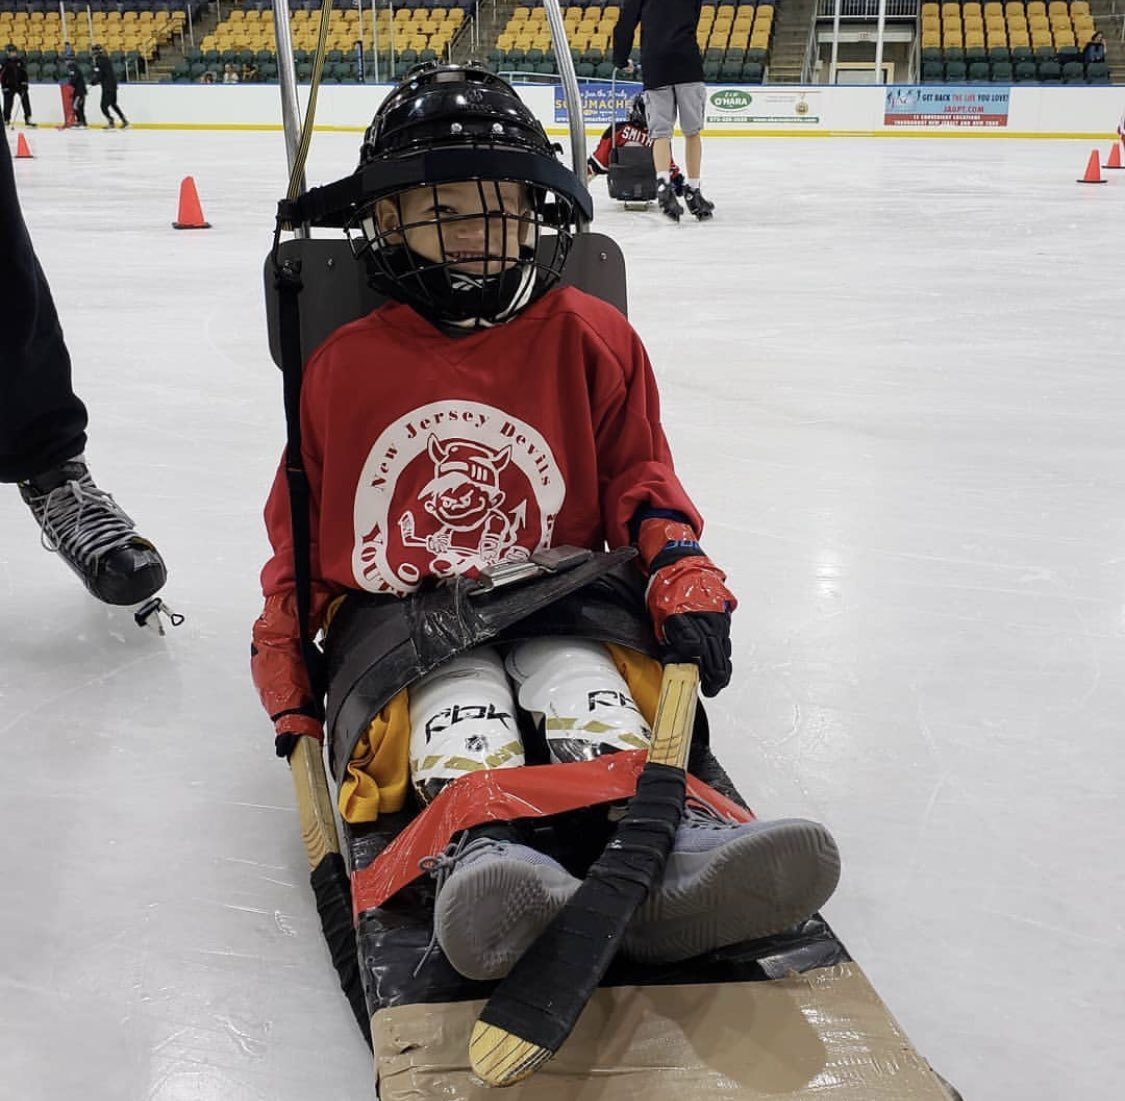 MMF Muscle Champion, Harry Smith, ready for sled hockey!